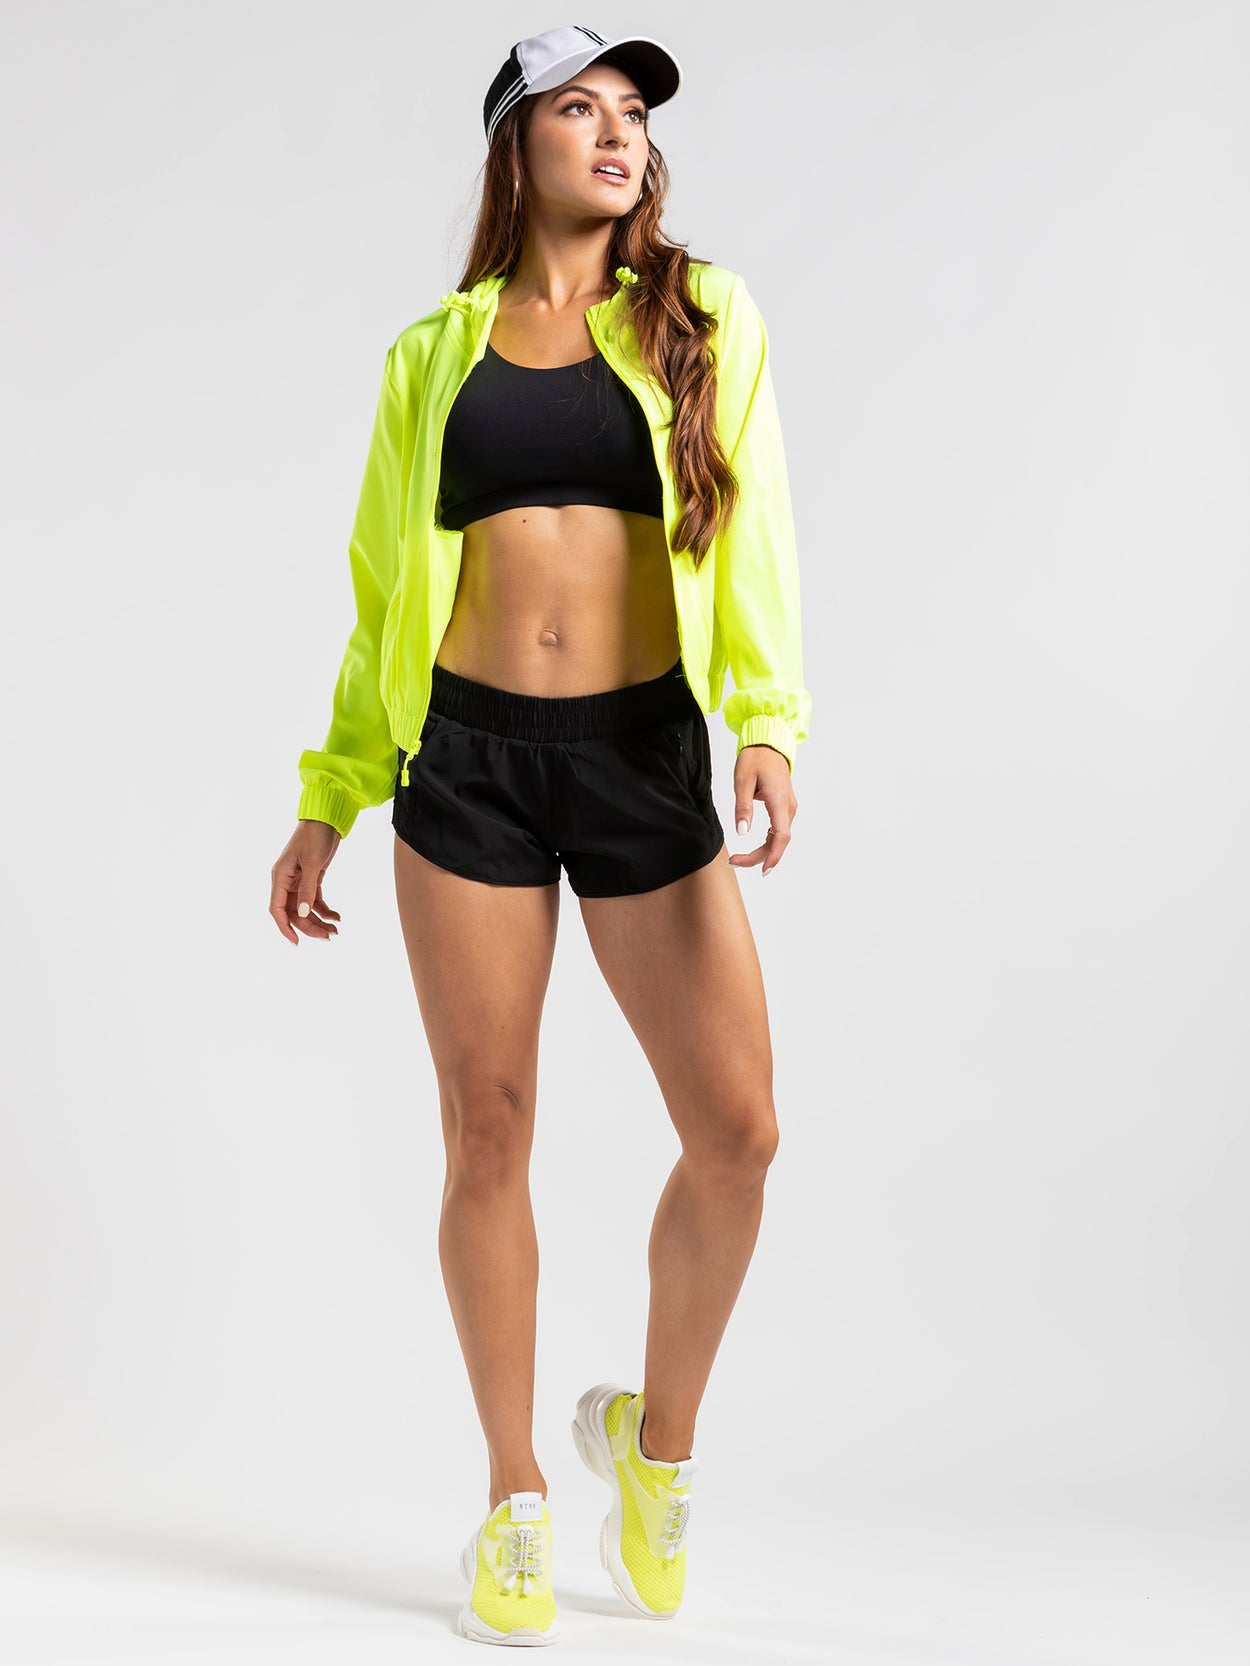 Short, black workout shorts with mesh inserts, a secure front pocket and elastic waistband.